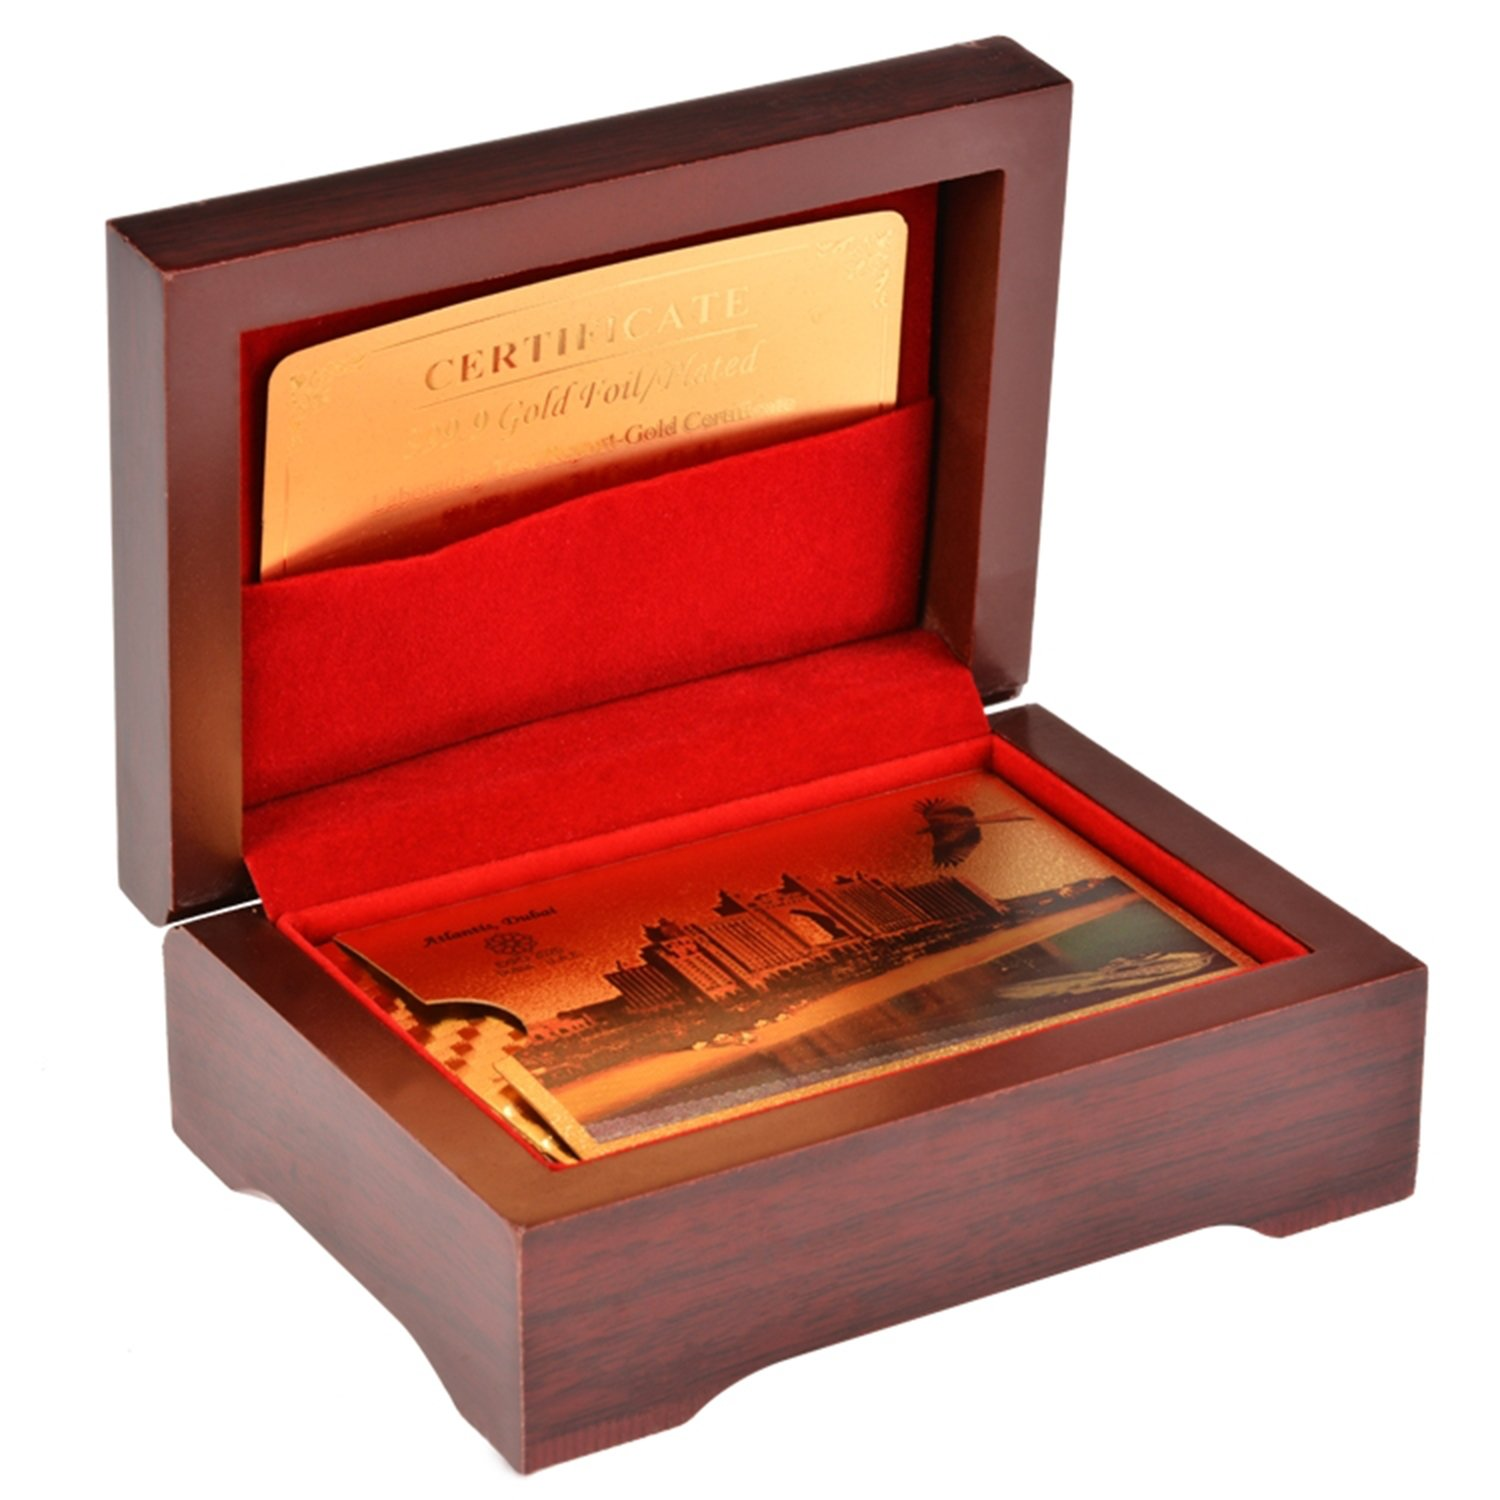 New Golden Color Poker Playing Cards With Wood Box and Certificate